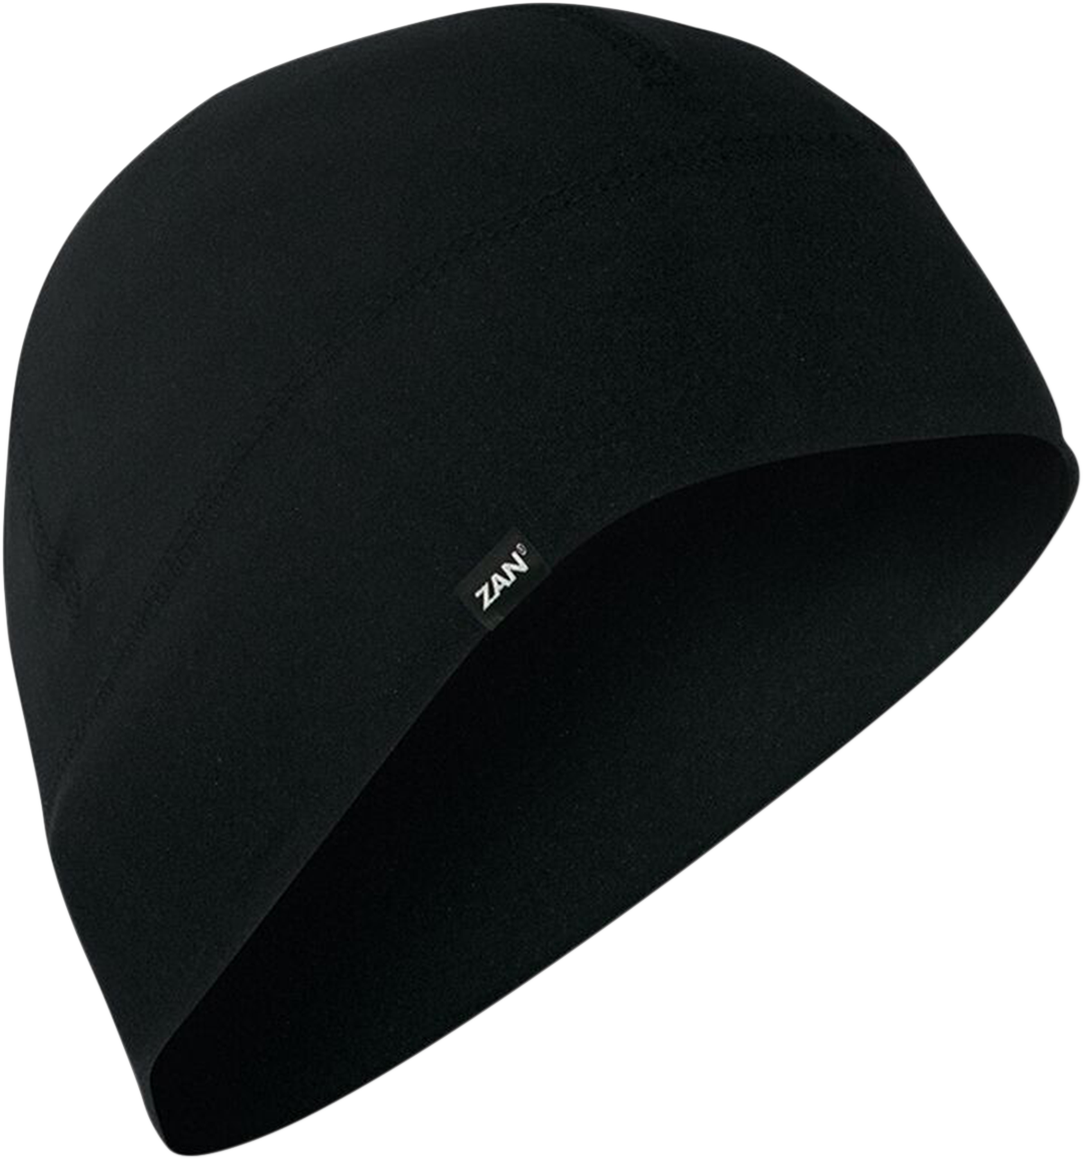 Zan Headgear Black Sportflex Unisex Adult One Size Helmet Casual Beanie